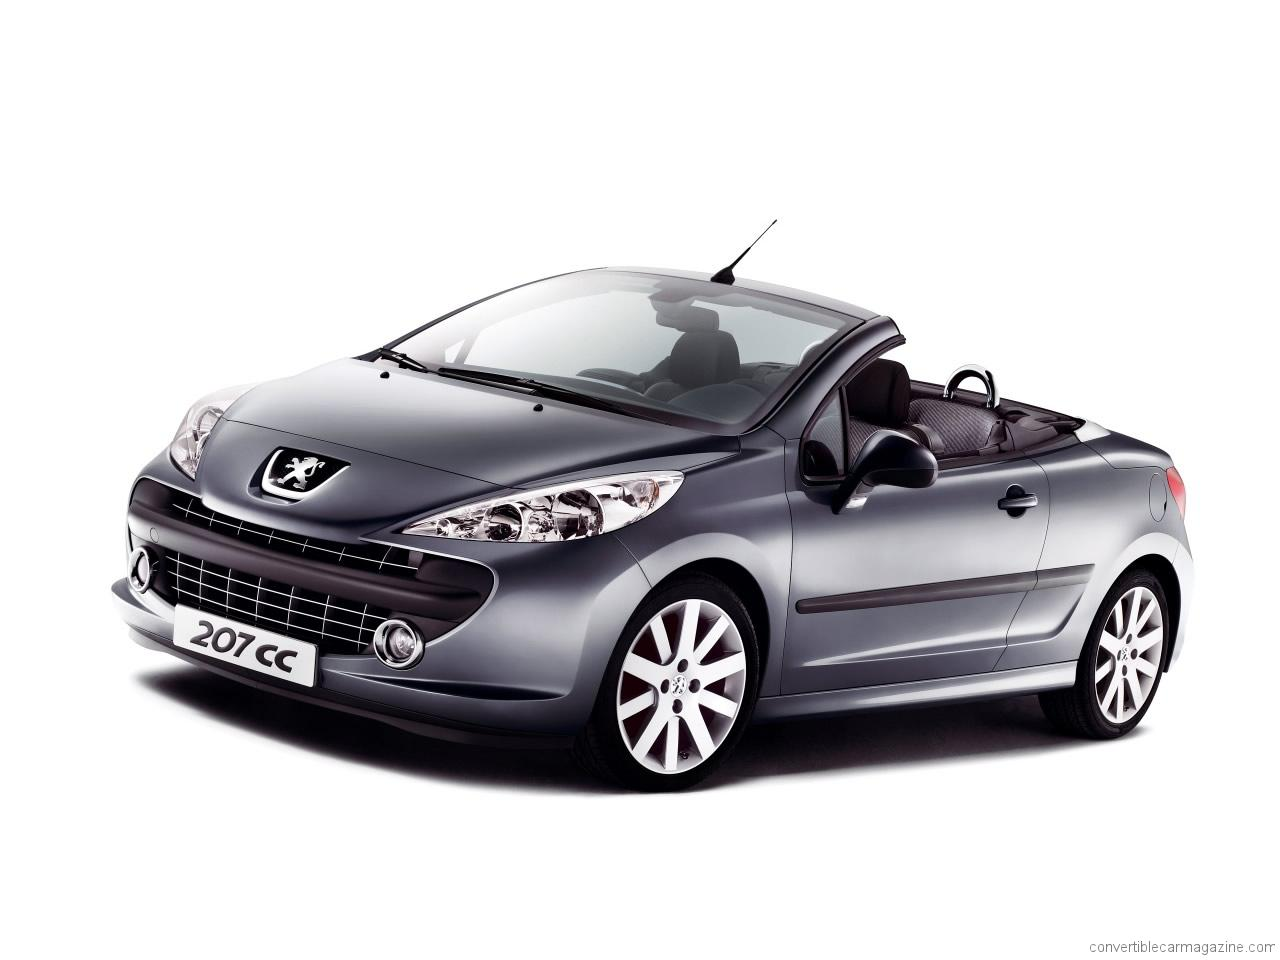 Peugeot 207 cc buying guide - Peugeot 206 coupe cabriolet review ...